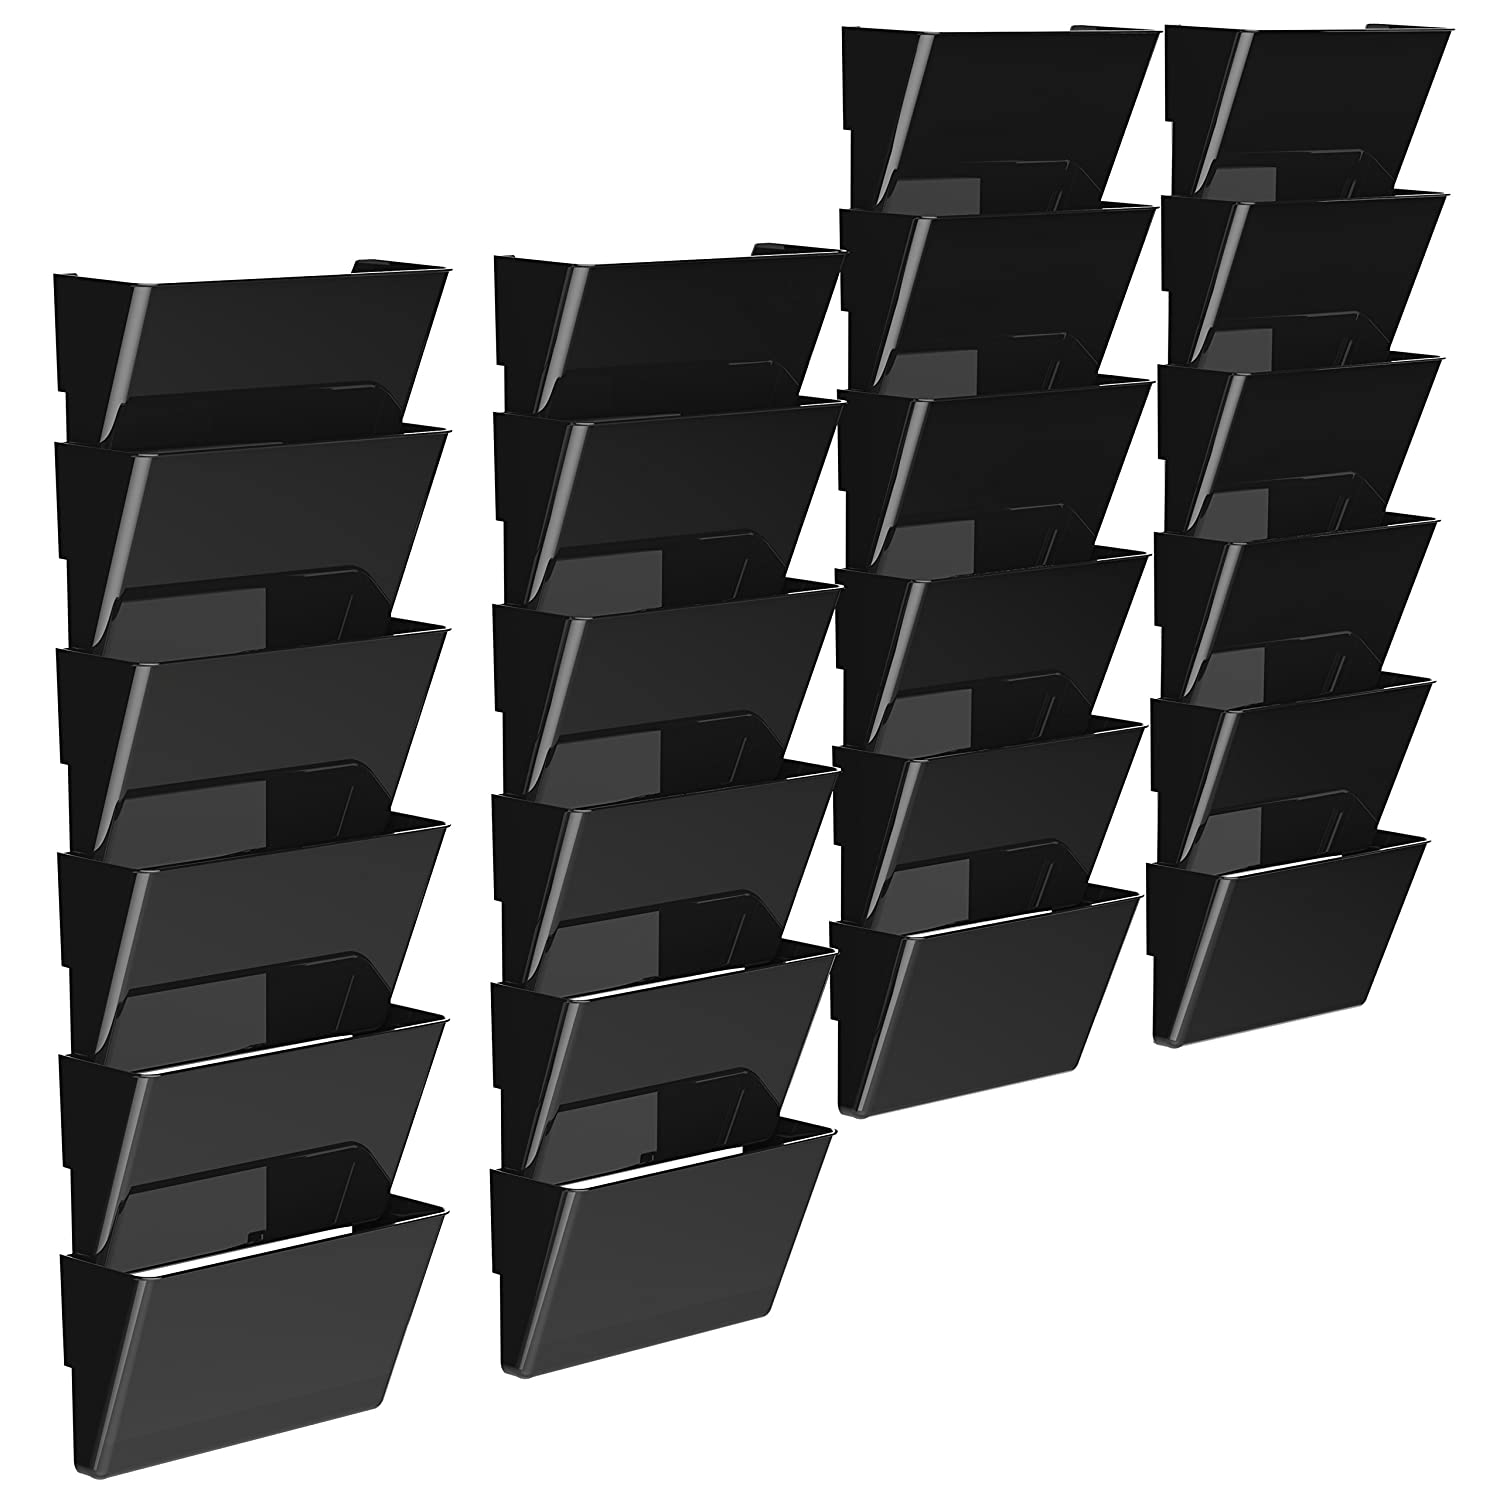 Storex Recycled Wall Files, 13 x 7 x 4 Inches Each, Letter, Black, Case of 4 6-Packs (70216B04C) Storex Industries Corp.